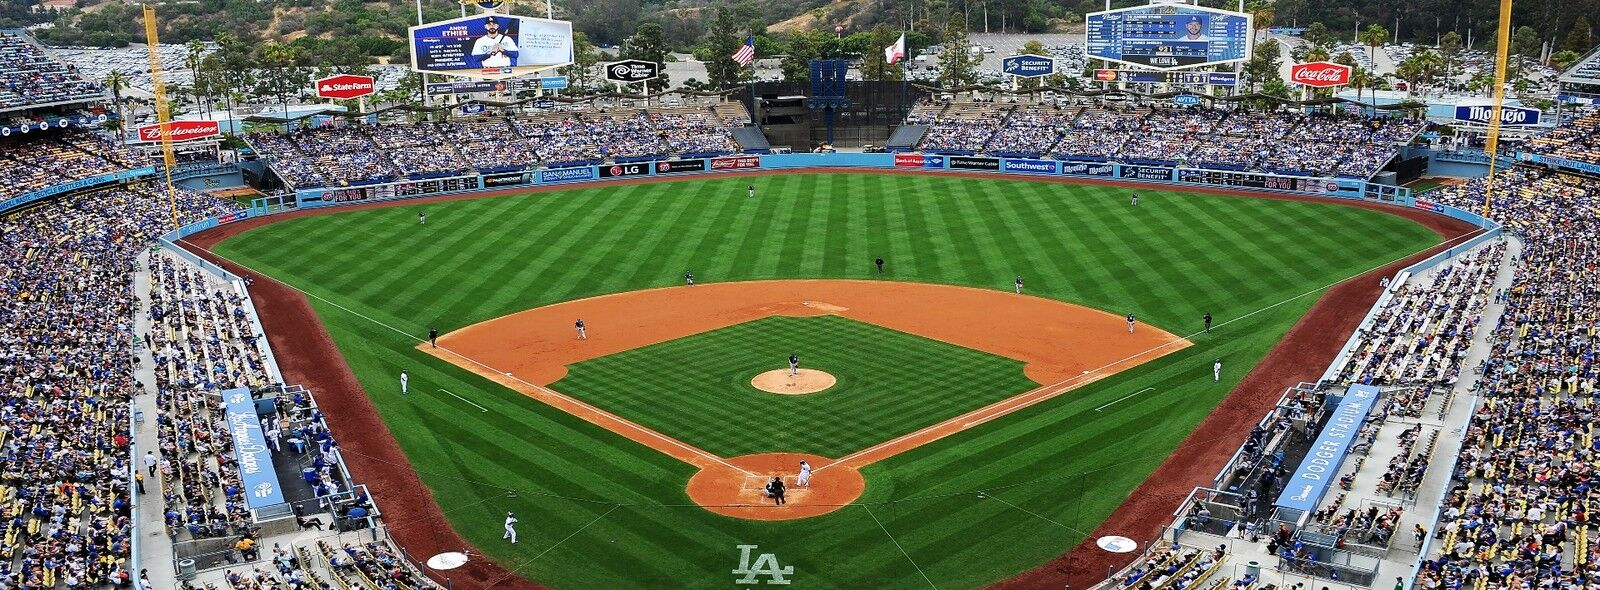 San Francisco Giants at Los Angeles Dodgers Tickets (Fan Appreciation Day)